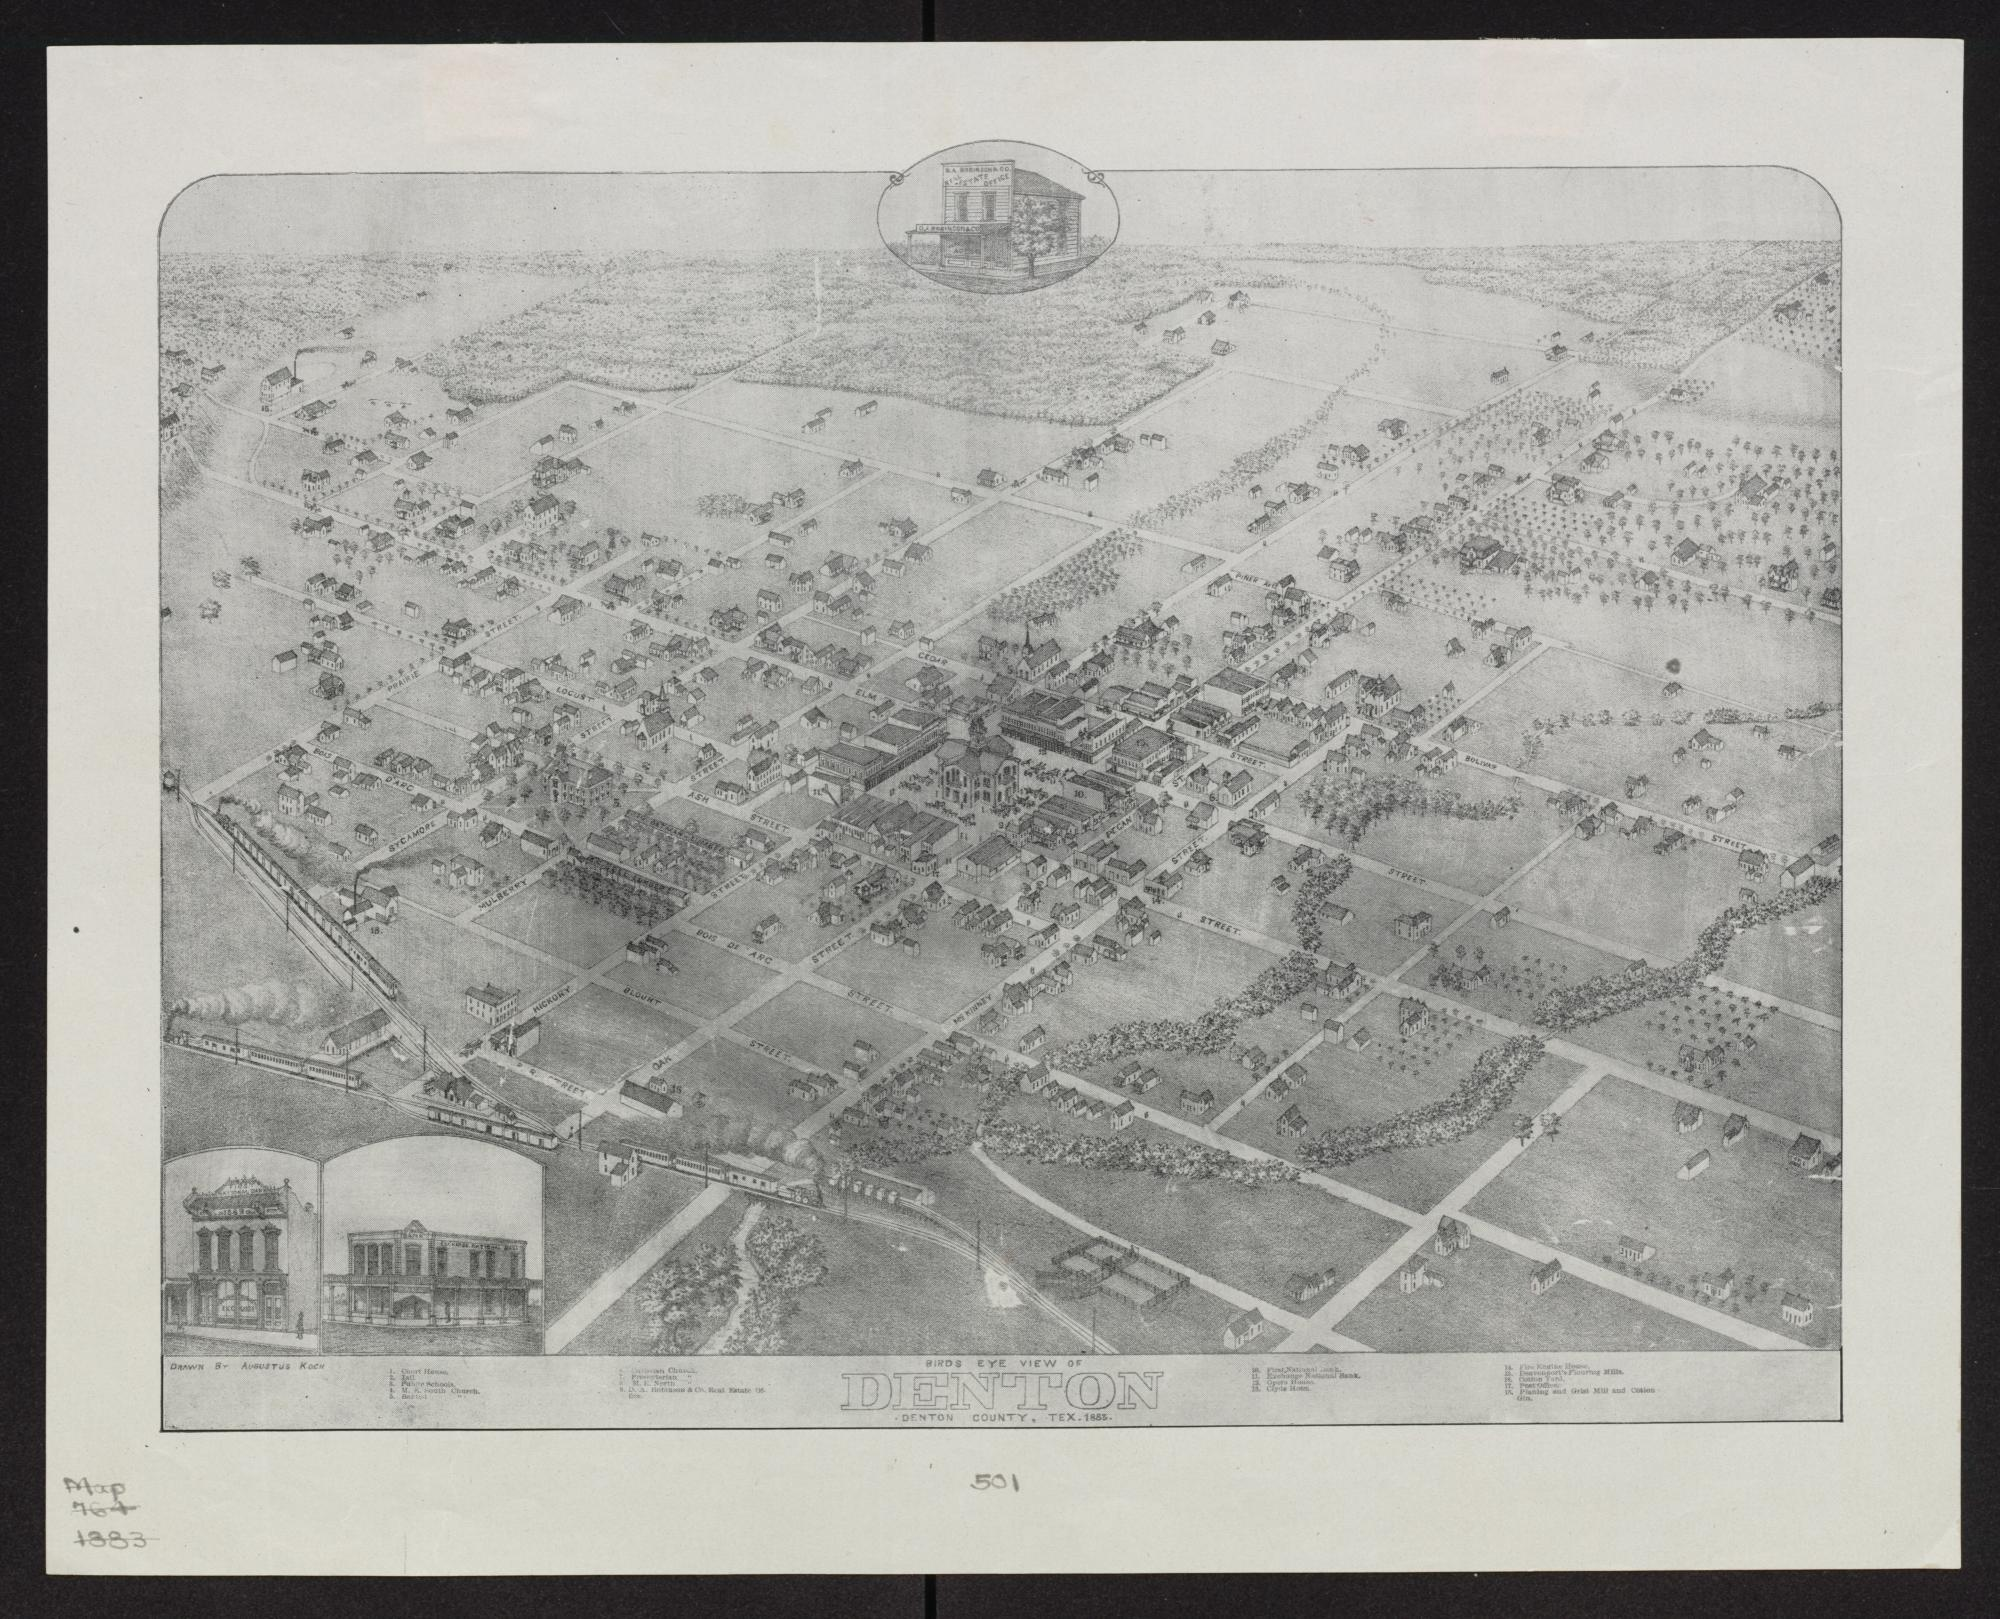 Birds eye view of Denton Denton County Texas 1883 The Portal